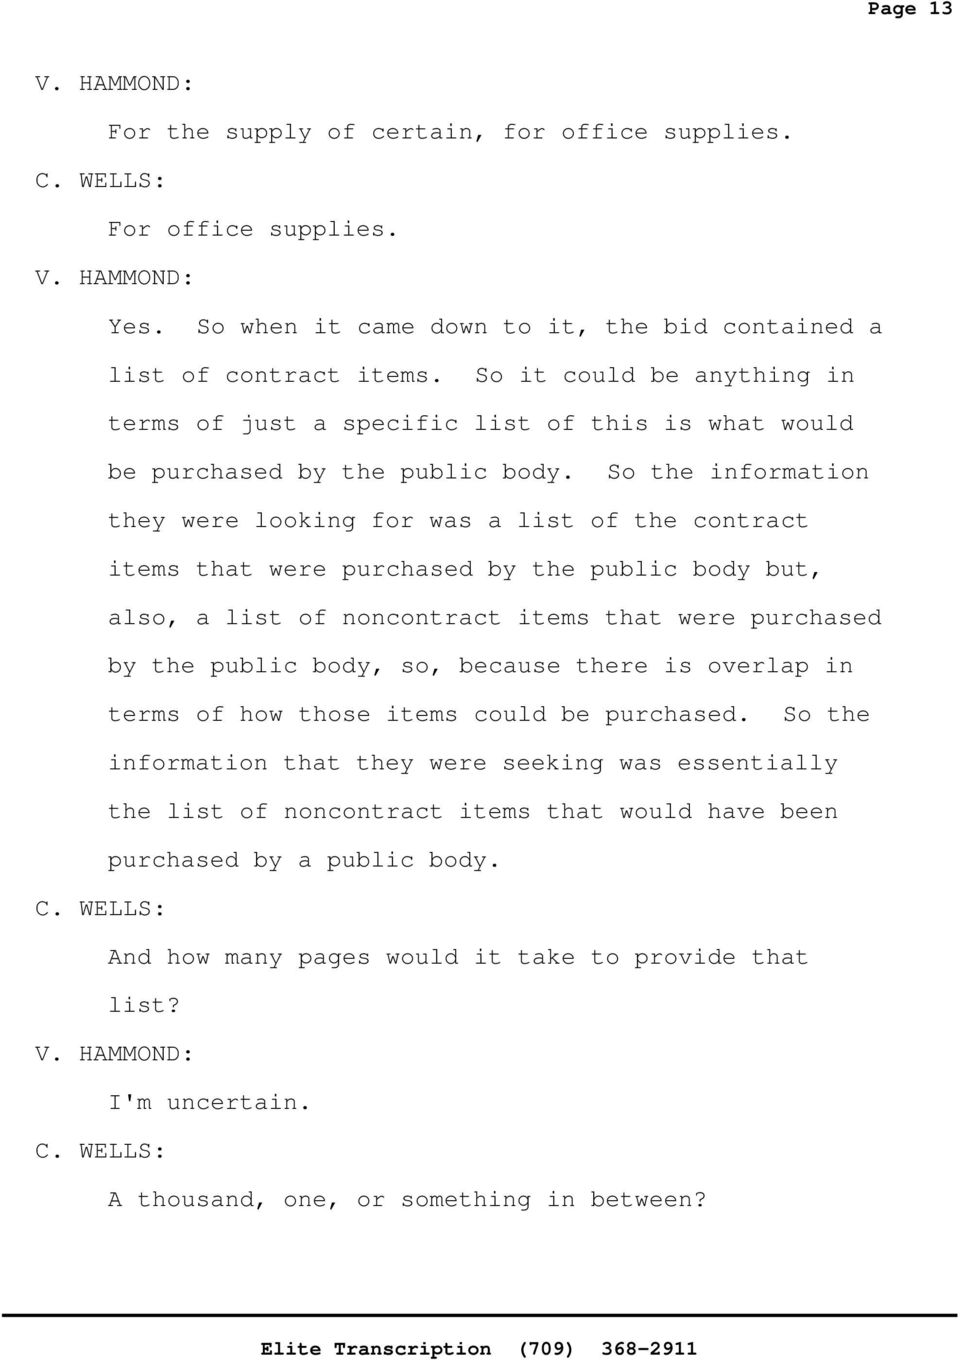 So the information they were looking for was a list of the contract items that were purchased by the public body but, also, a list of noncontract items that were purchased by the public body, so,